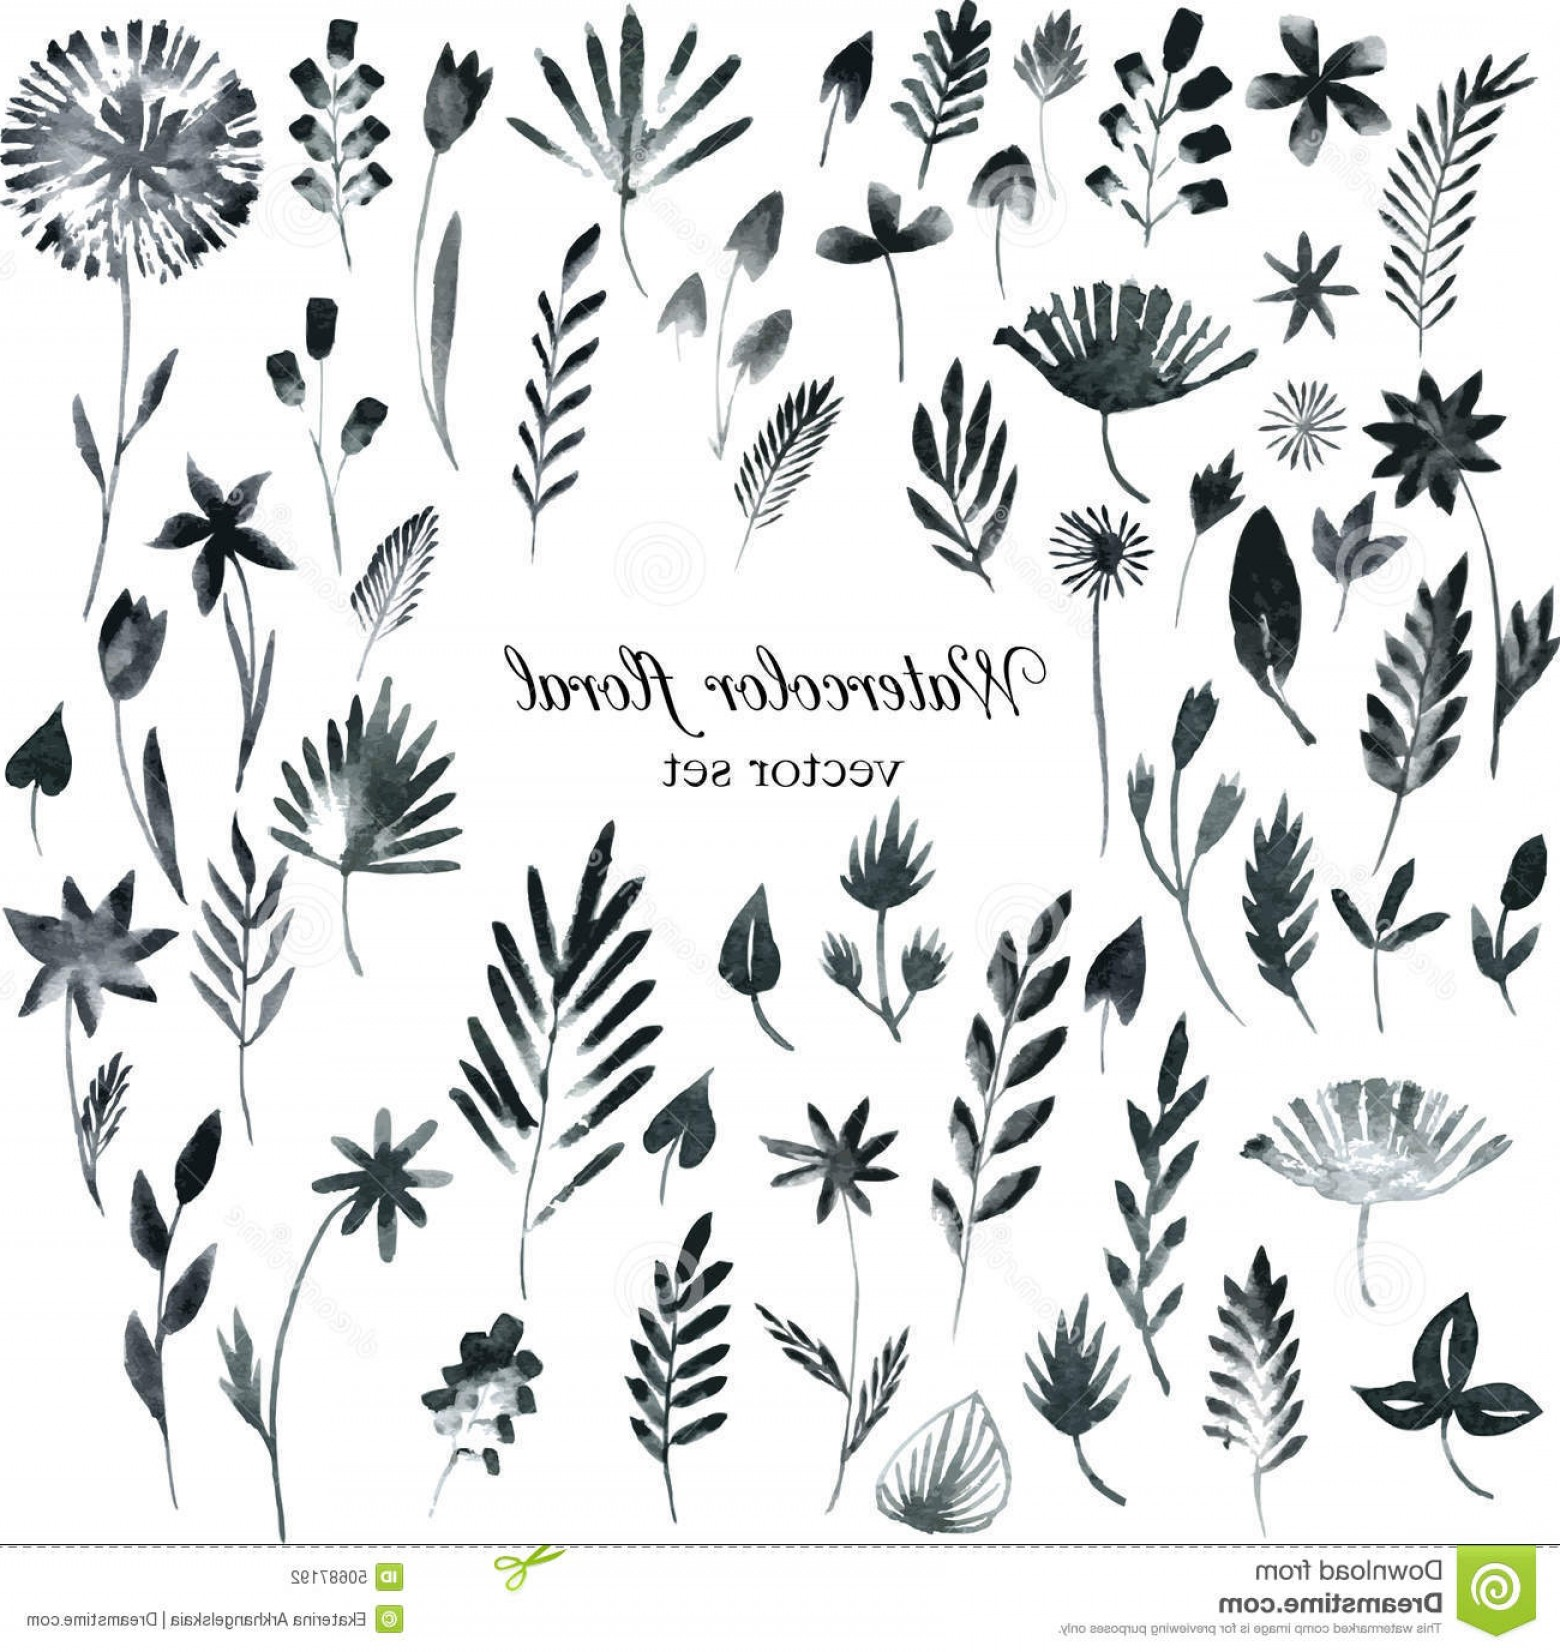 Flower Elements Vector: Stock Illustration Set Black Watercolor Floral Elements Vector Monochrome Hand Drawn Image